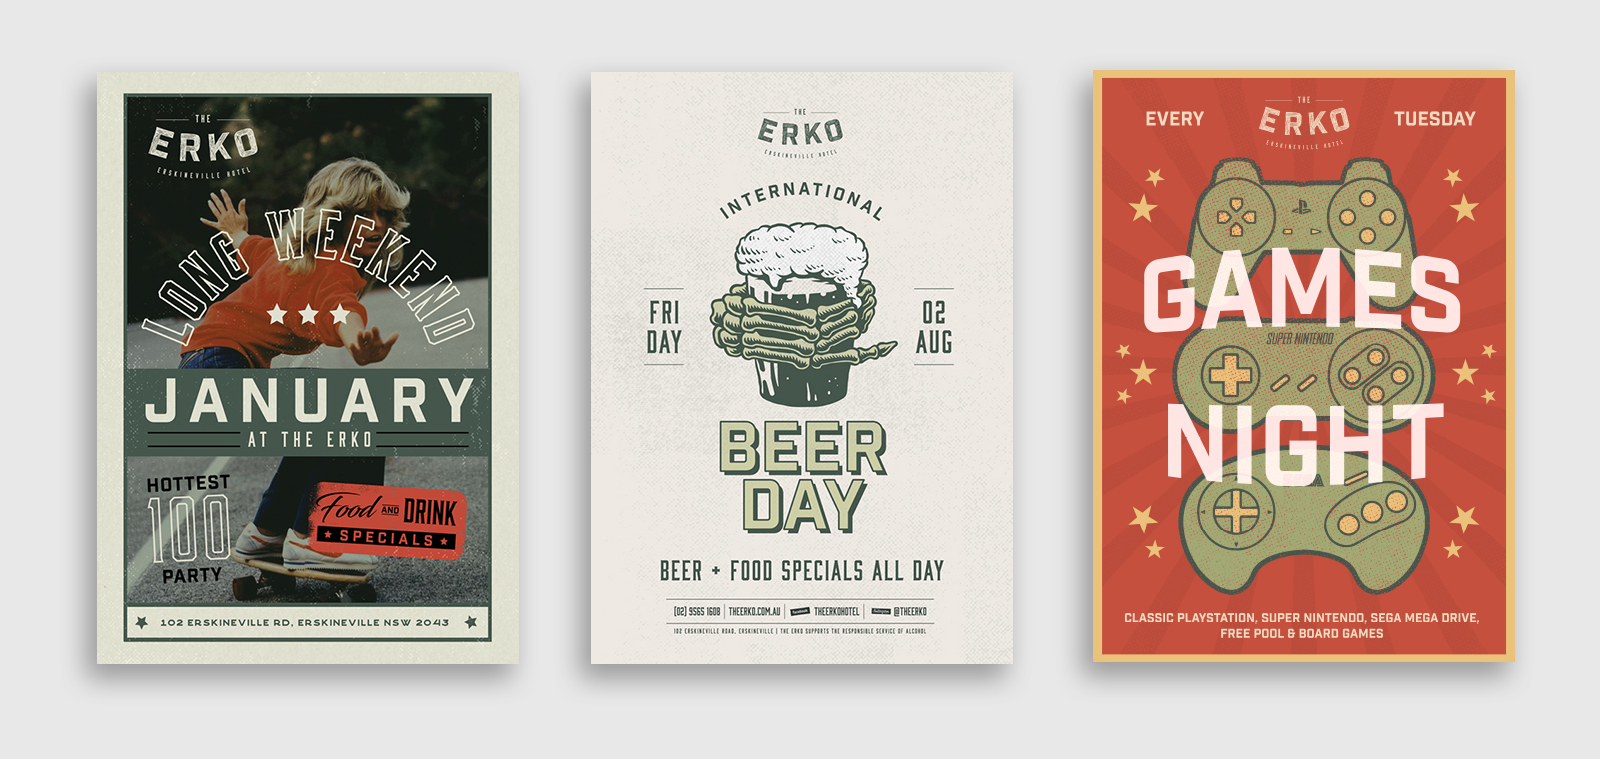 three poster designs for events at The Erksineville Hotel